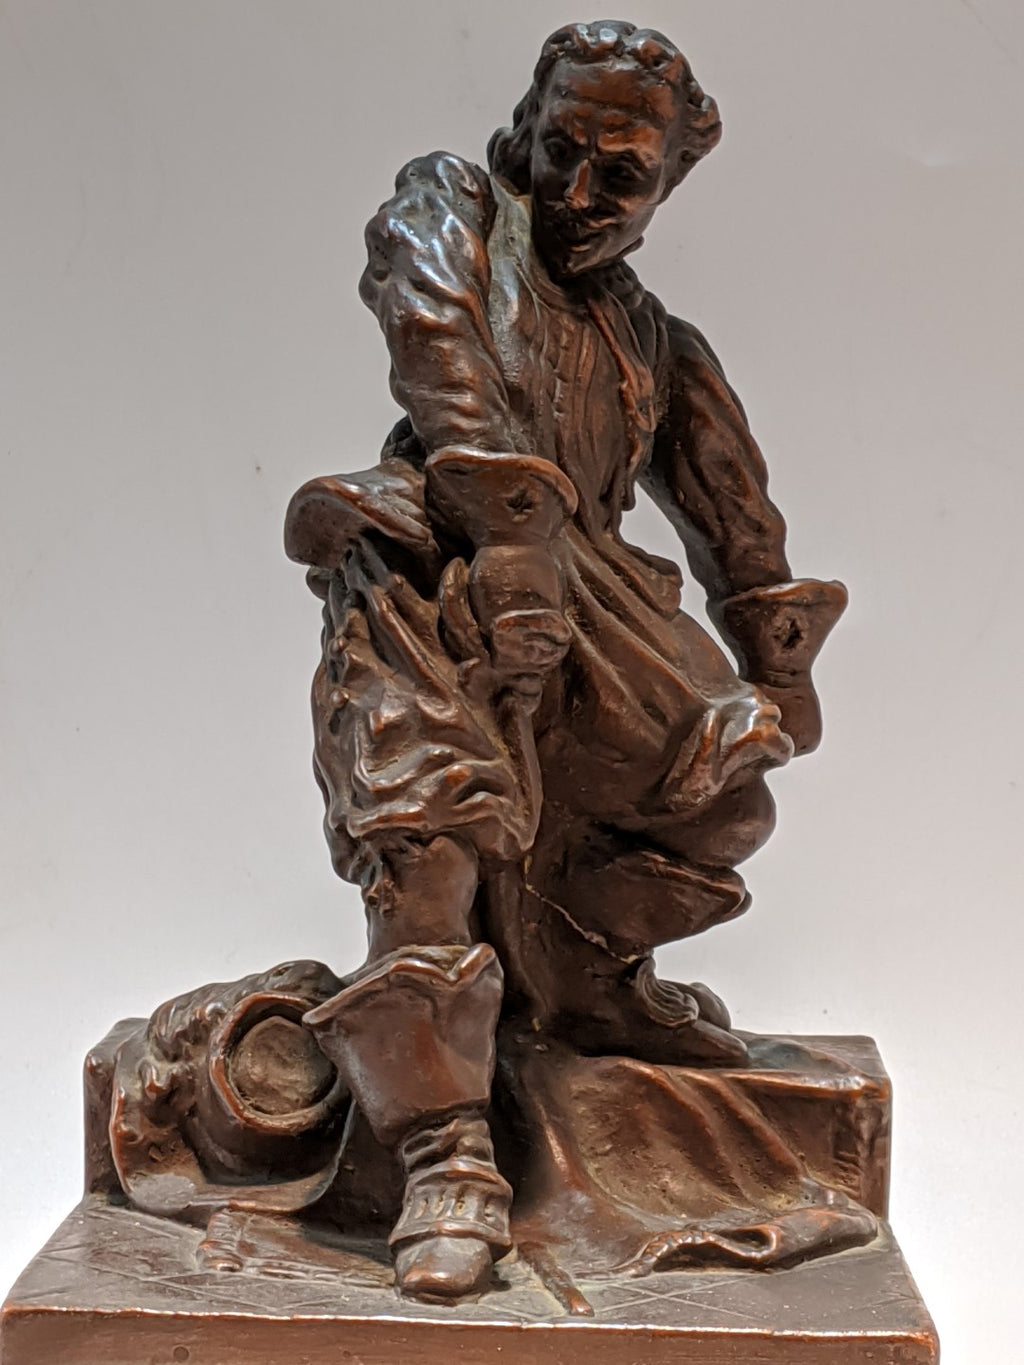 ART SCULPTURE OF D'ARTAGNAN